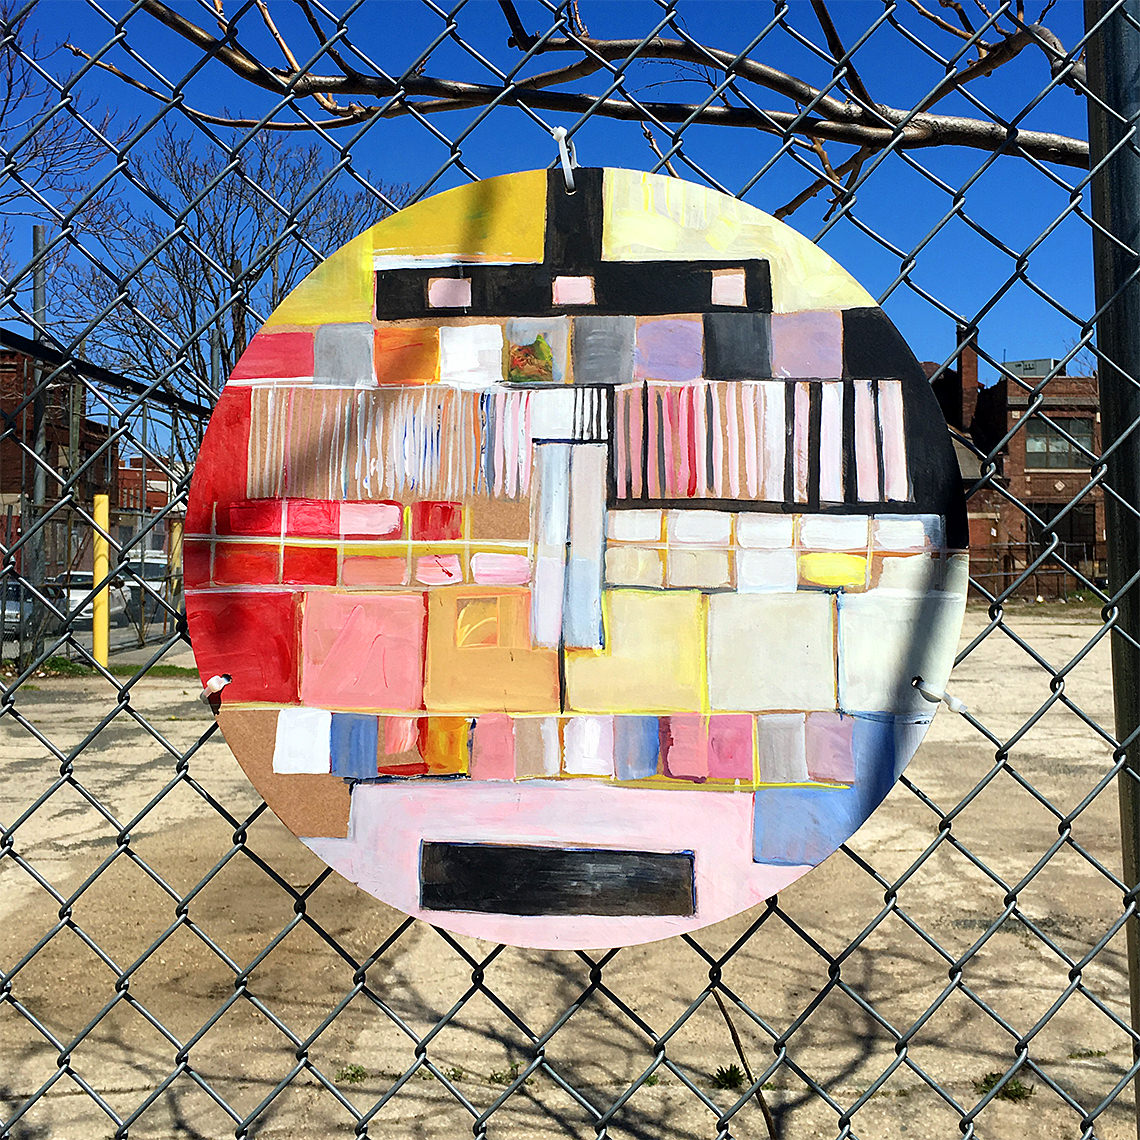 circlular painting hung on fence